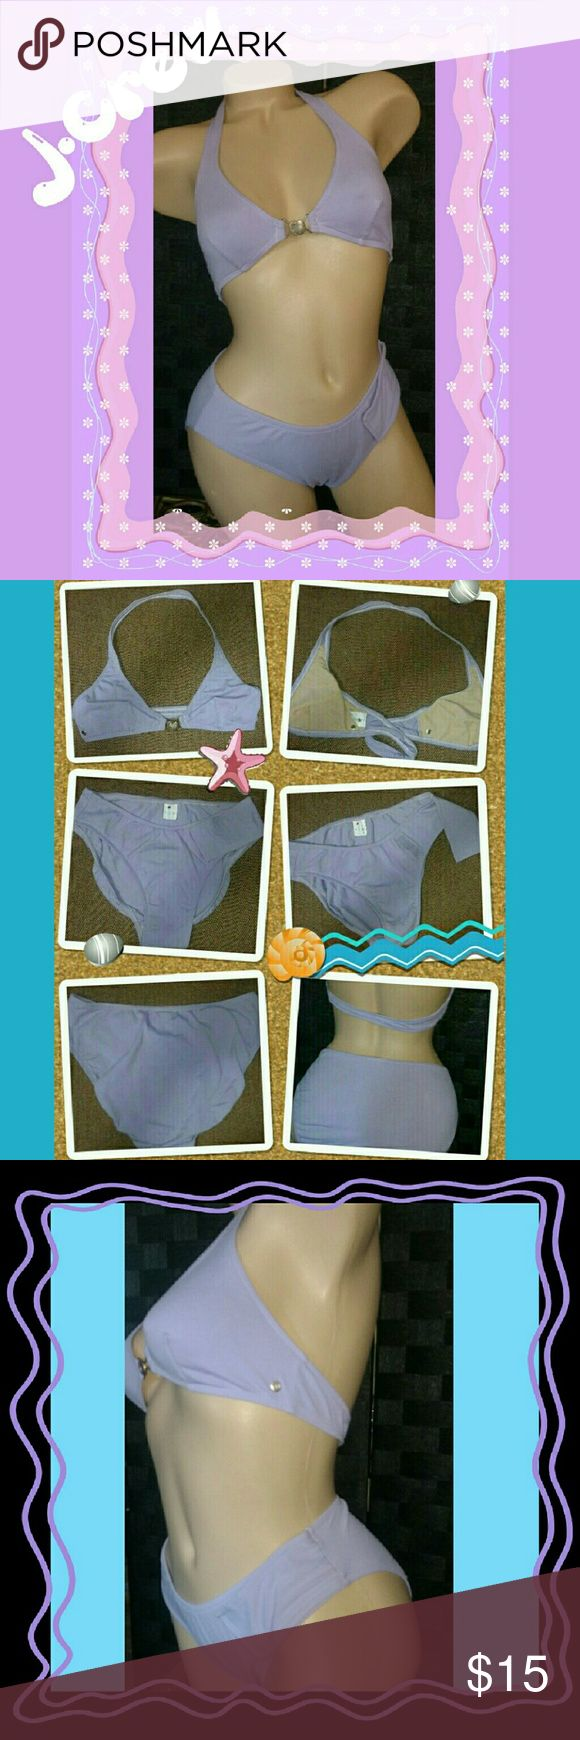 NWOT J Crew halter bikini medium New, light violet, medium, 2 piece bikini by J. Crew. Halter style bikini top, front closure with silver toned hardware. Bikini bottoms have hi cut thighs with a Velcro closure flap and a hidden interior panel to assure a smooth sexy look. J. Crew Swim Bikinis